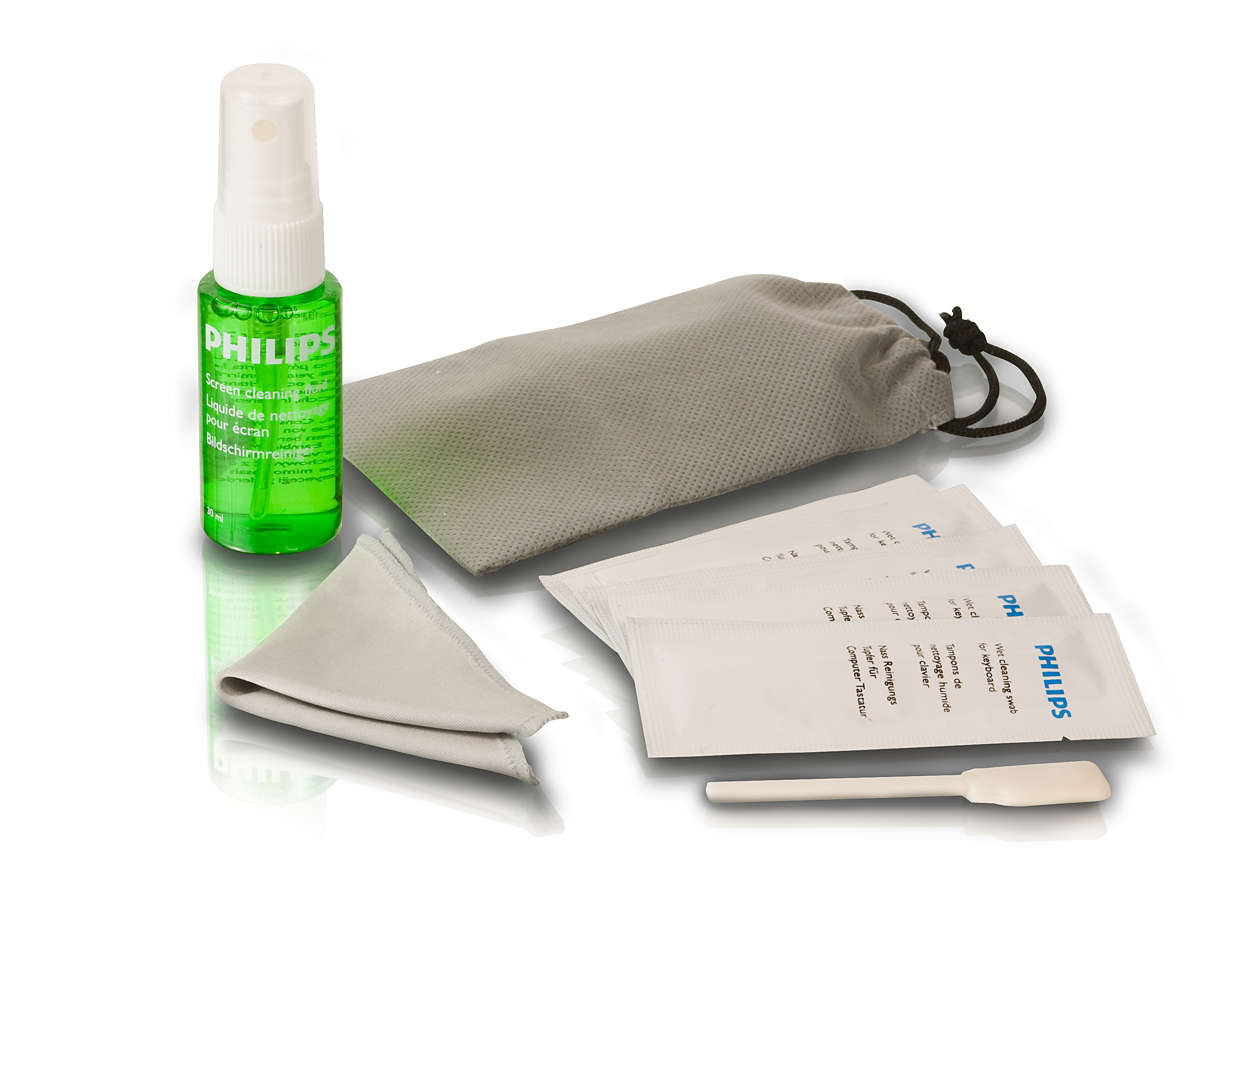 Safely cleans laptop and mobile device screens